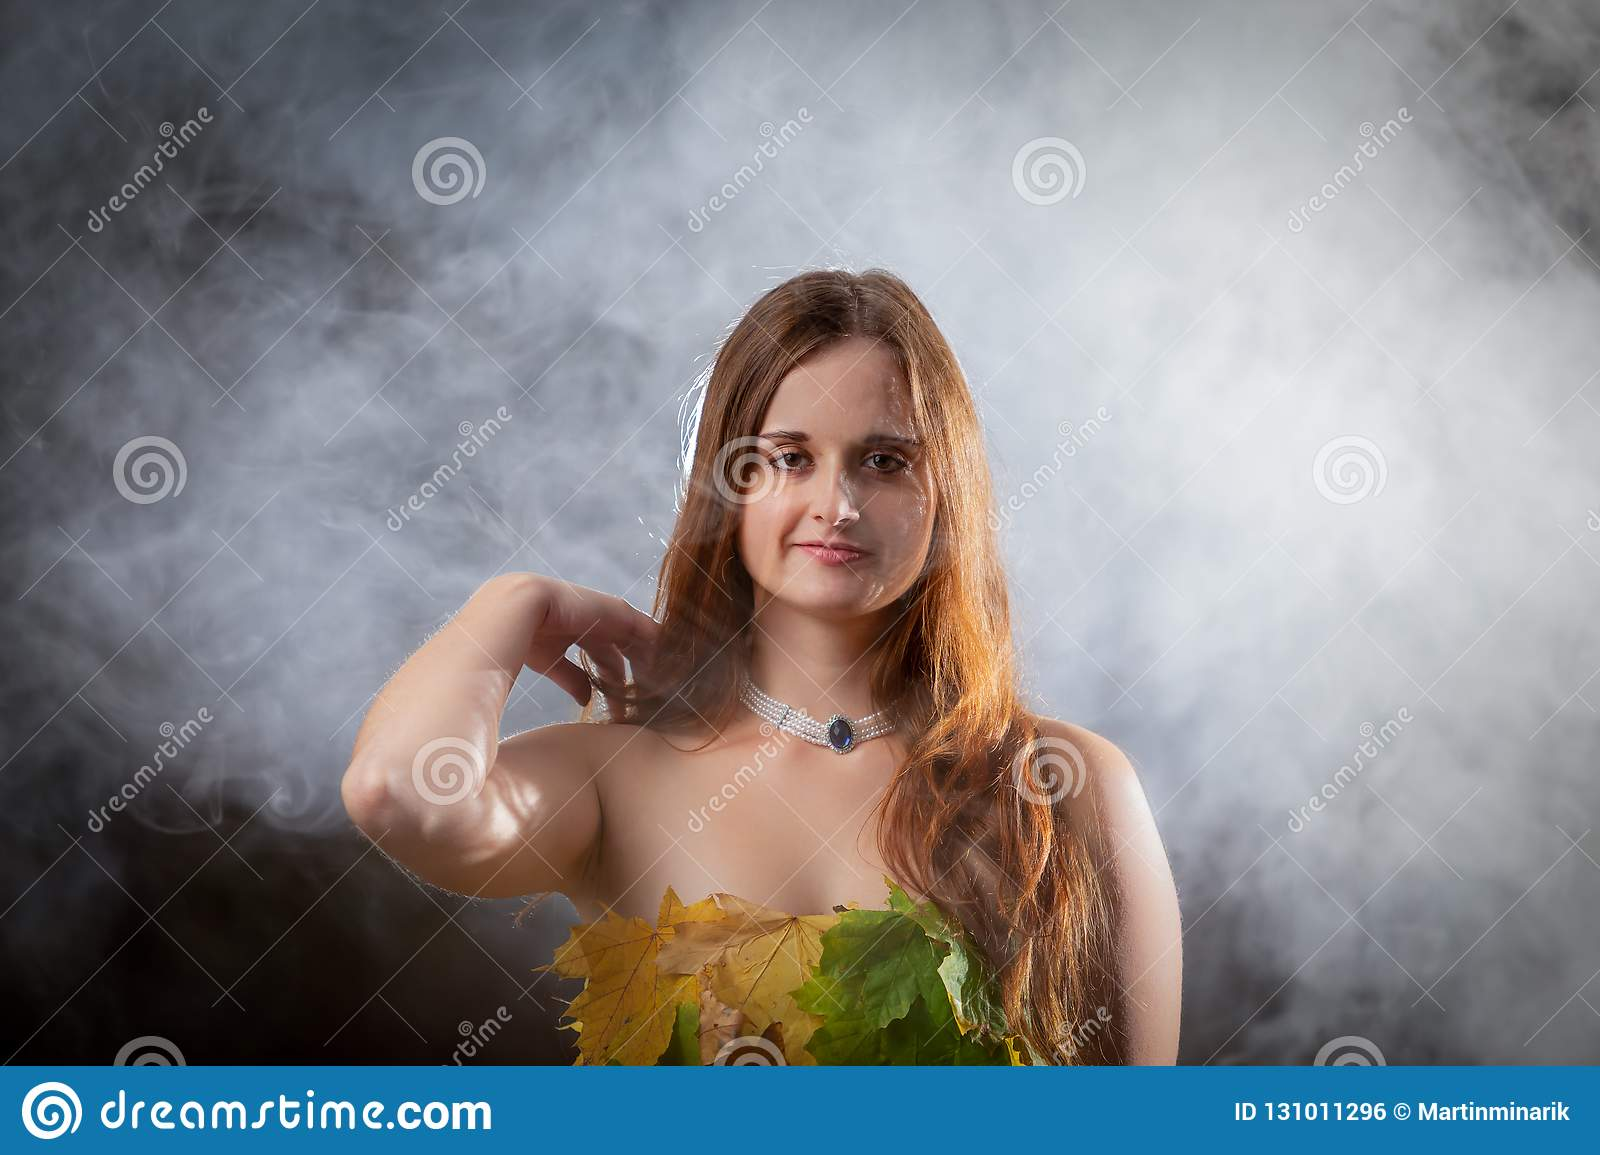 Close up on beautiful young girl with long hair wearing dress made from colorful leaves in the autumn misty forest